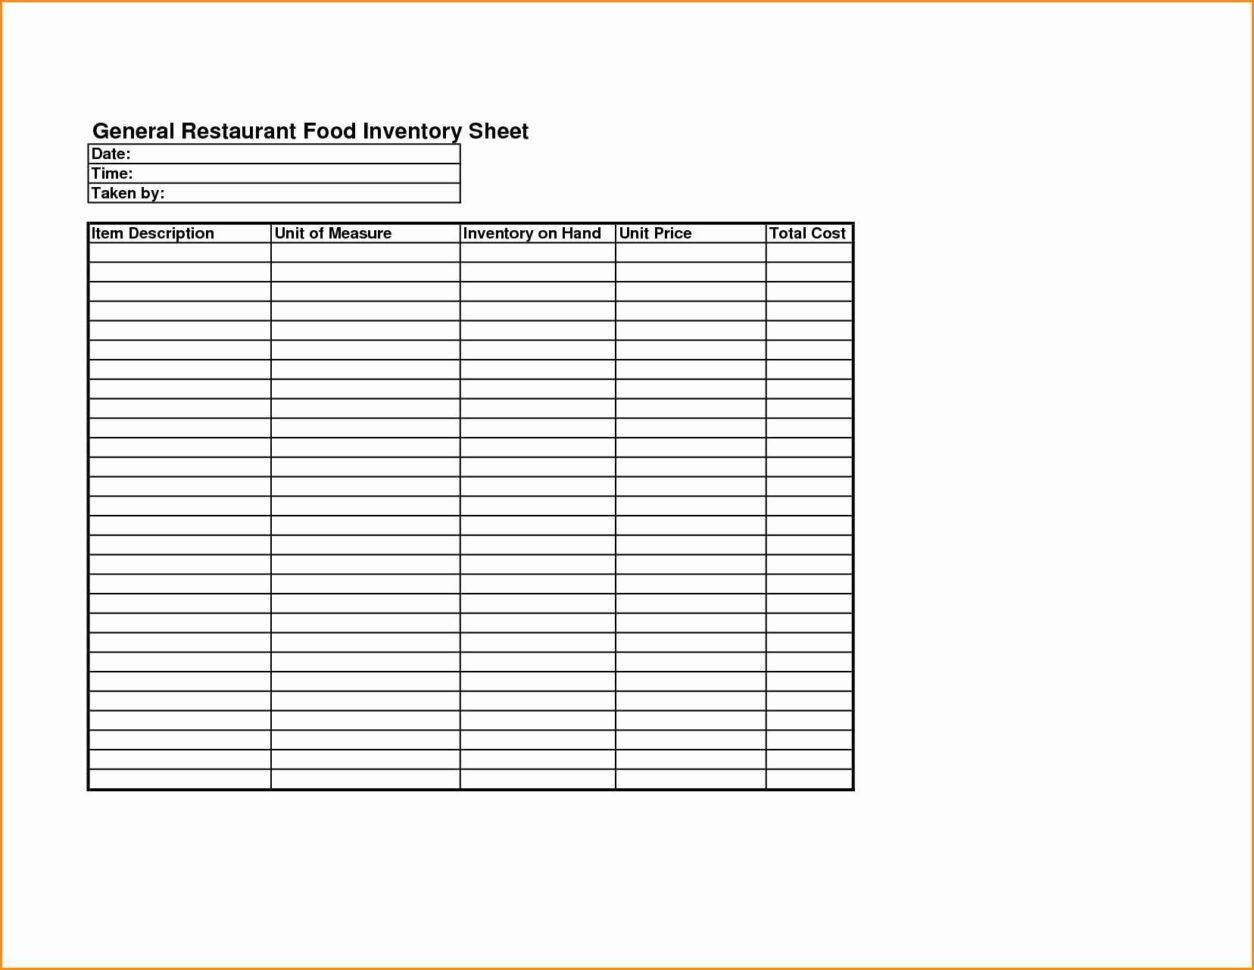 Food Cost Inventory Spreadsheet Best Of Food Cost Spreadsheet Excel With Free Restaurant Inventory Spreadsheet